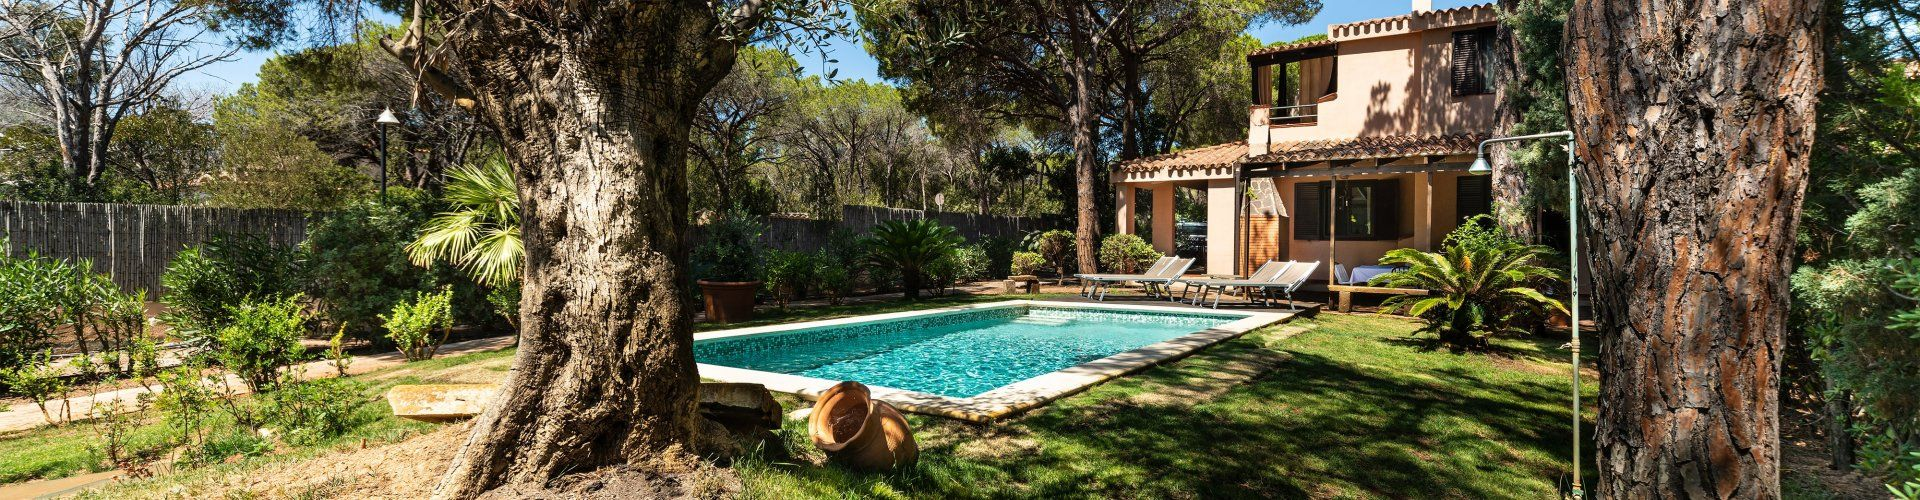 Holidayhome with private pool and mediterranean garden